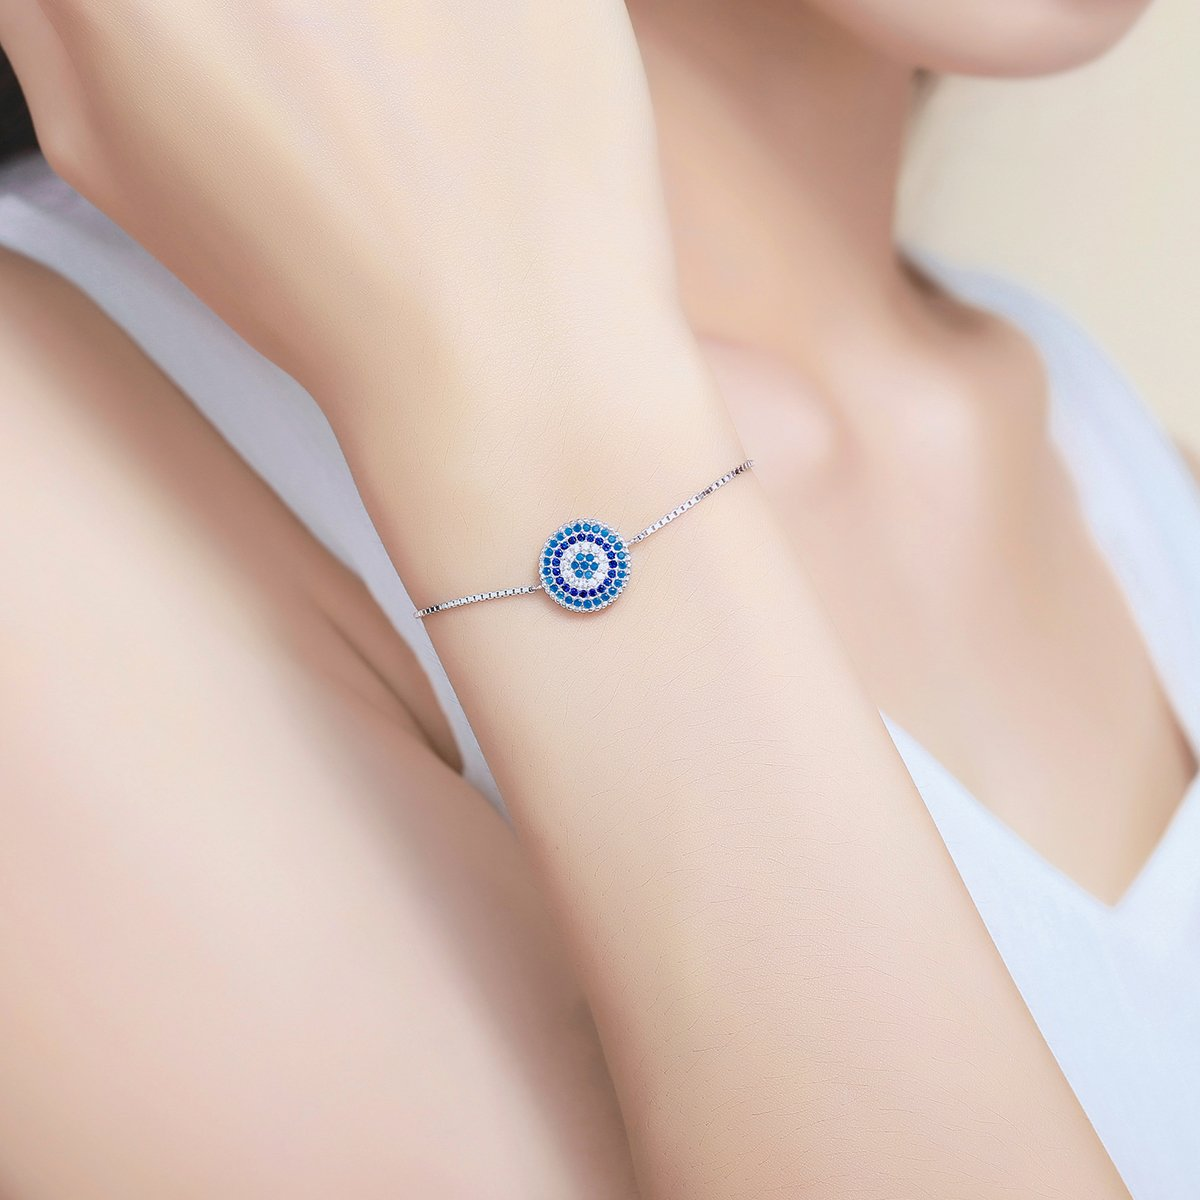 The Kiss Luxury Round Blue Lucky Eyes Adjustable 925 Sterling Silver Charm Bracelet